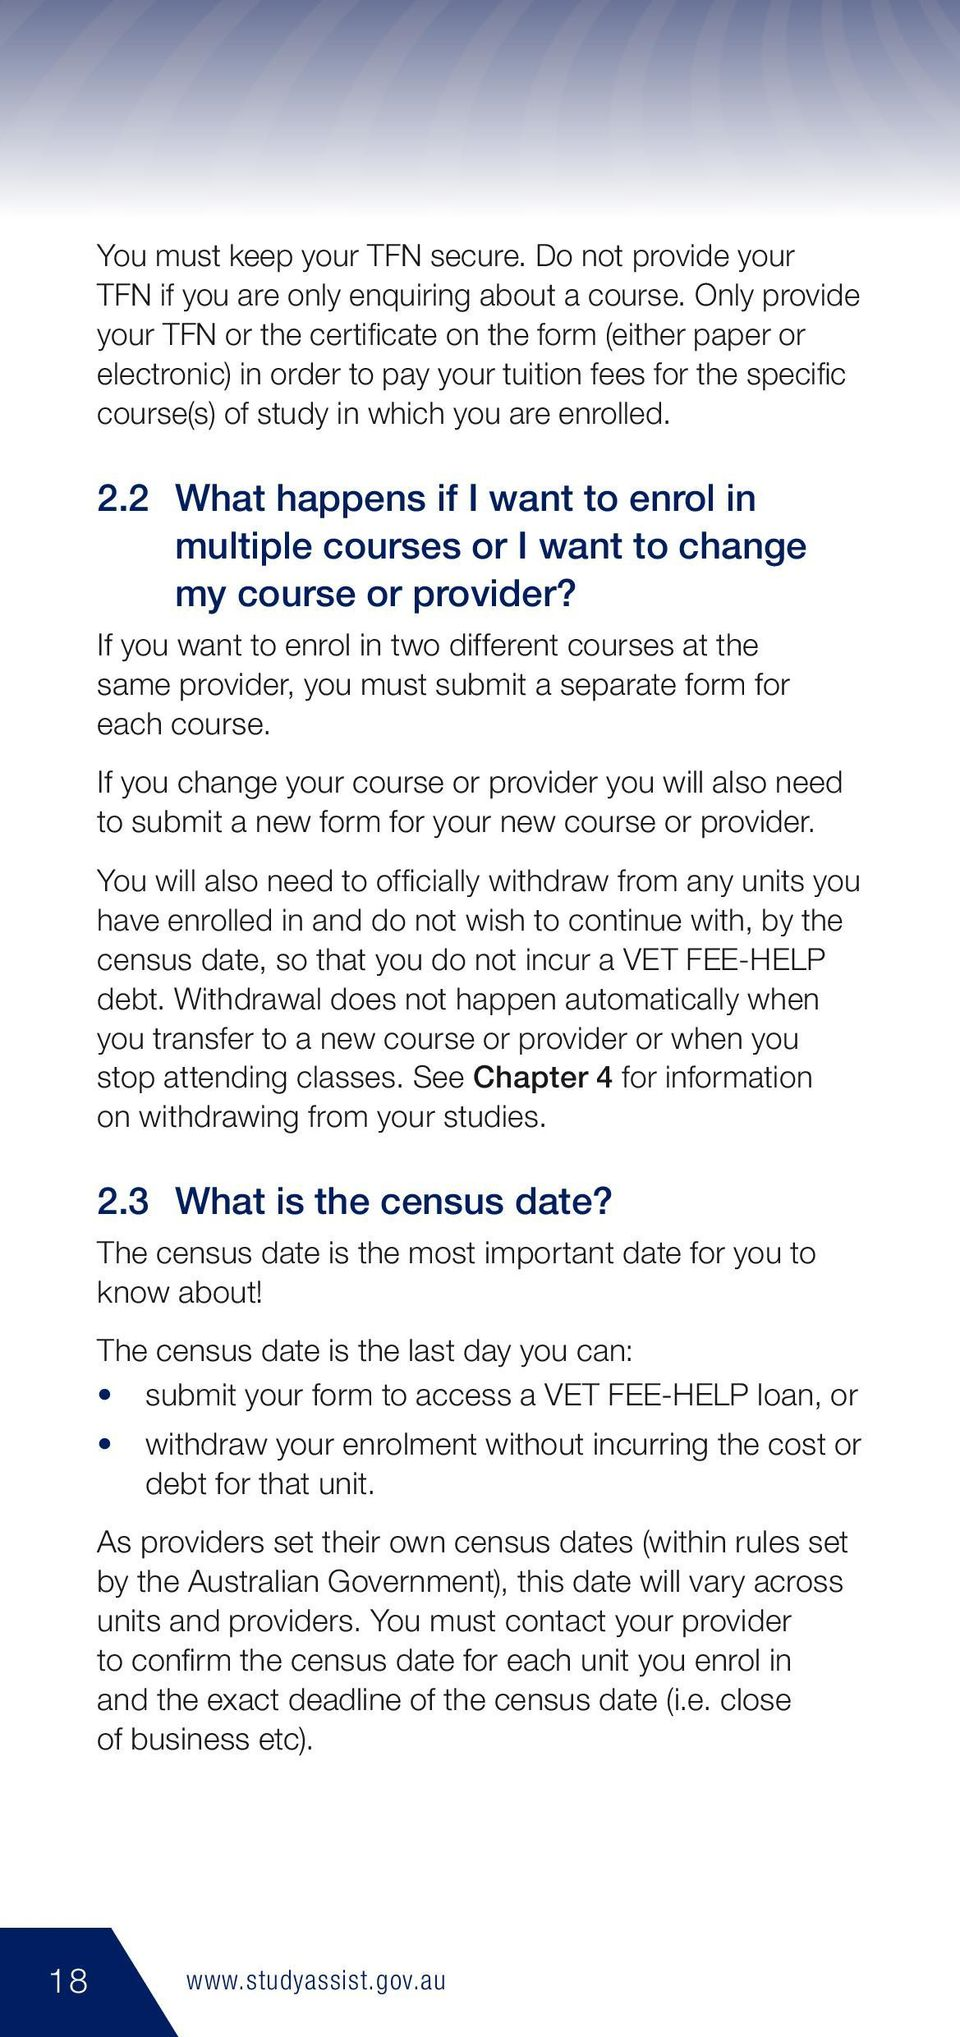 2 What happens if I want to enrol in multiple courses or I want to change my course or provider?